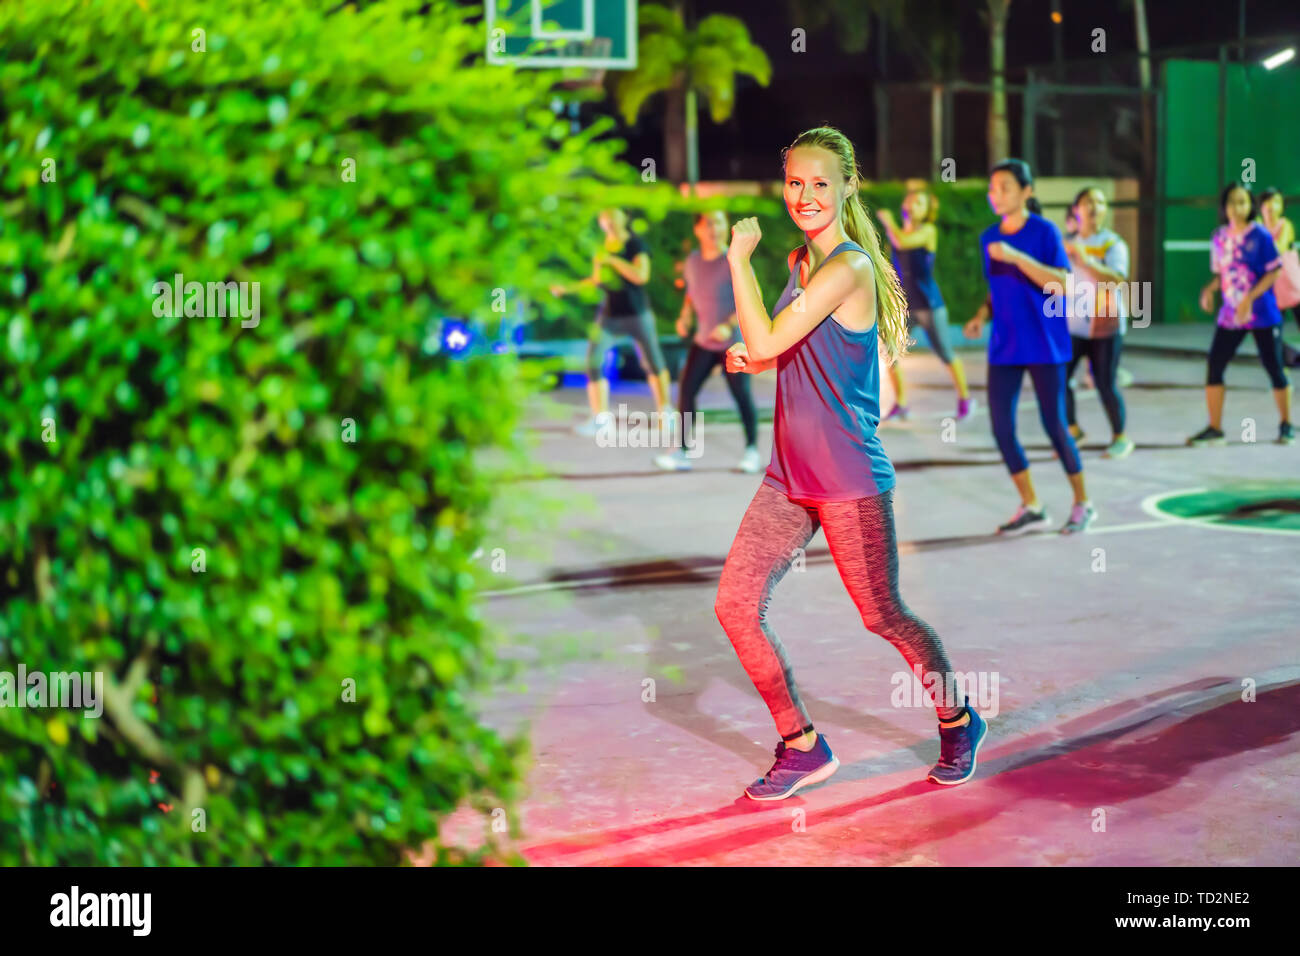 Young woman on a group workout on the basketball court in the evening - Stock Image